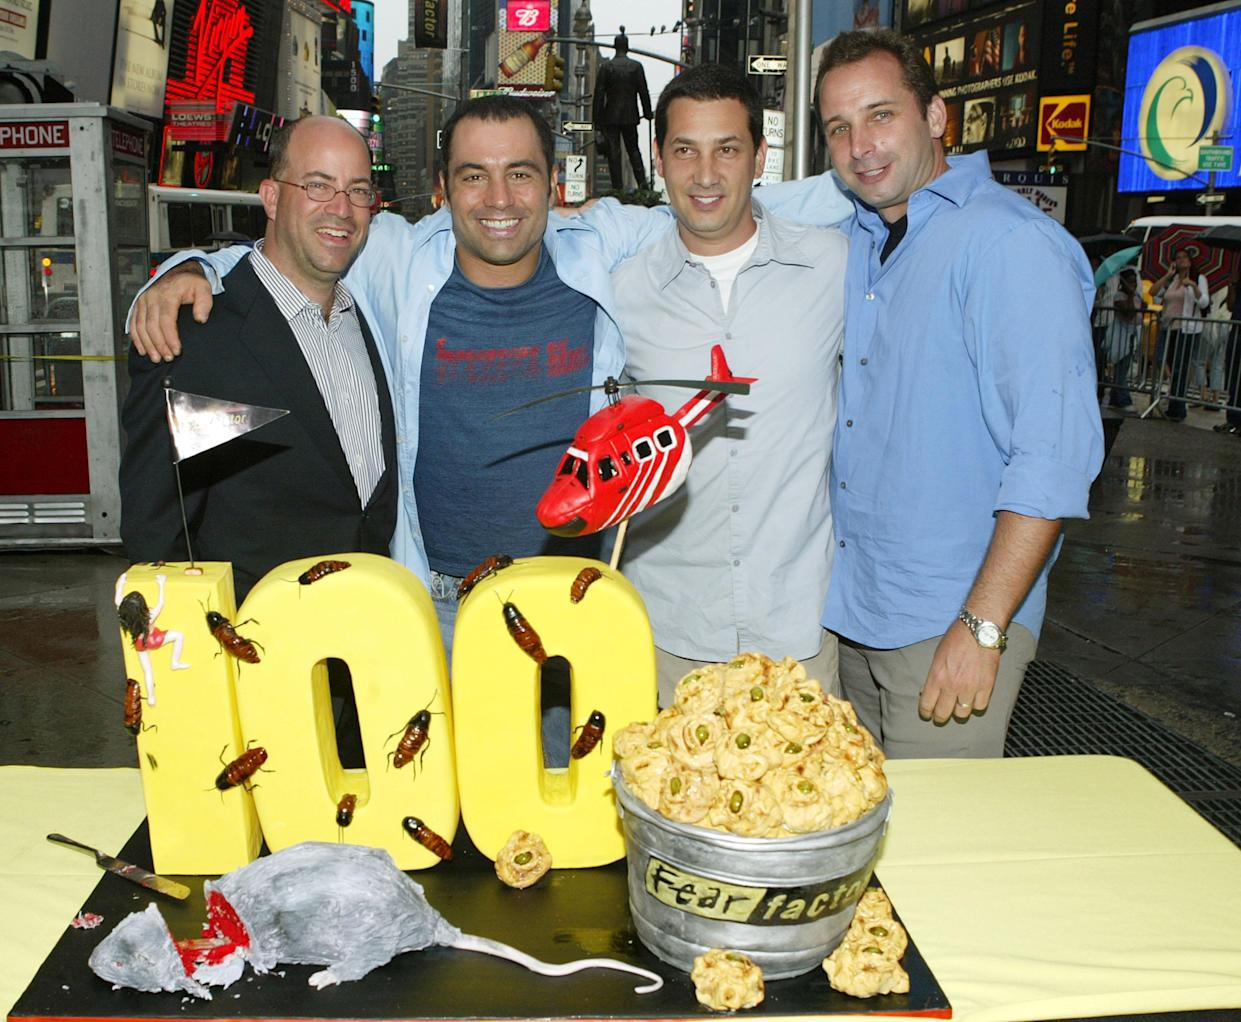 NEW YORK - JULY 12:  (L-R) NBC President Jeff Zucker, Fear Factor host Joe Rogan and executive producers Matt Kunitz and David Hurwitz attend the show's 100th episode celebration in Times Square July 12, 2004 in New York City.  (Photo by Peter Kramer/Getty Images)